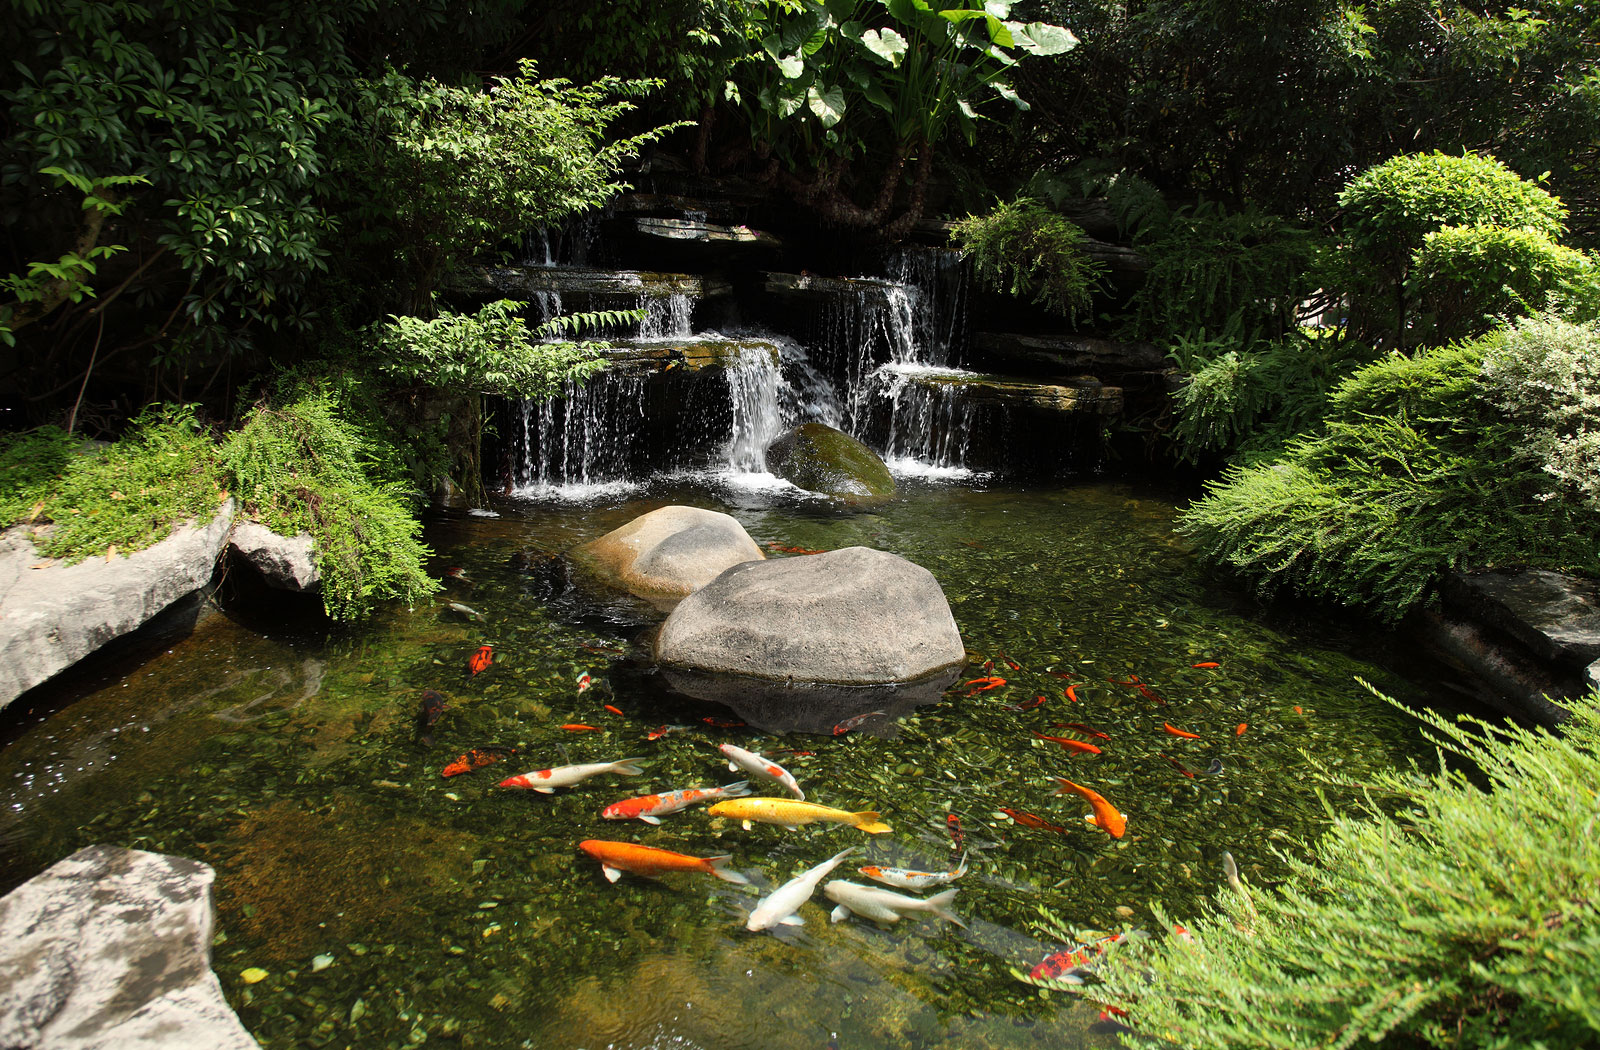 Albany plattsburgh burlington vt outdoor water gardens for Japanese garden san jose koi fish